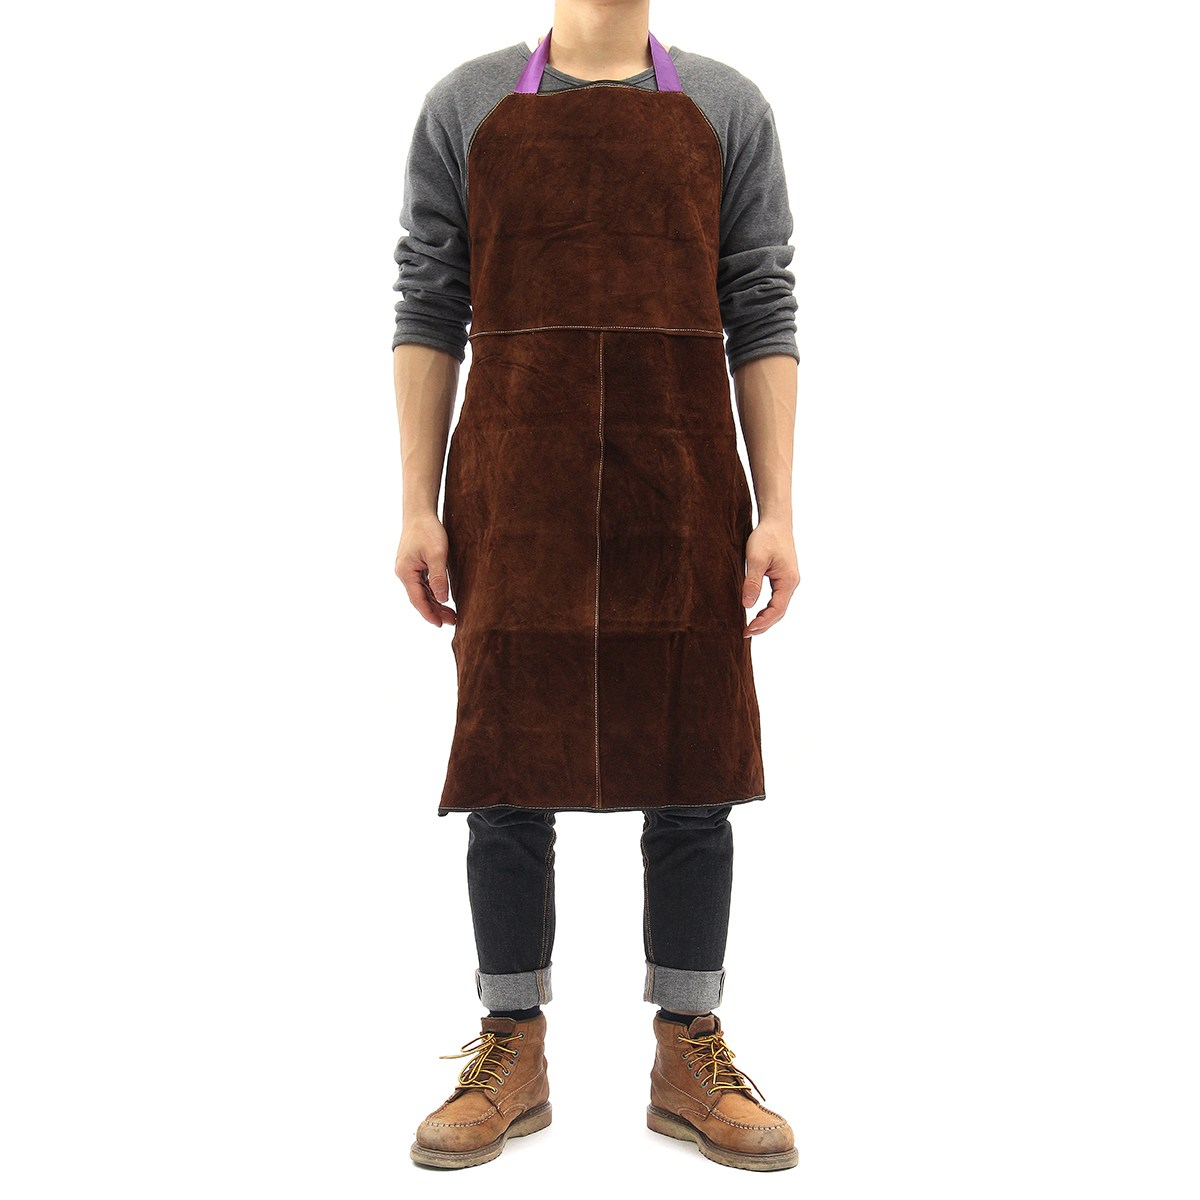 New Safurance Welding Equipment Welder Heat Insulation Protection Cow Leather Apron 60x90cm Workplace Safety Activating Blood Circulation And Strengthening Sinews And Bones Safety Clothing